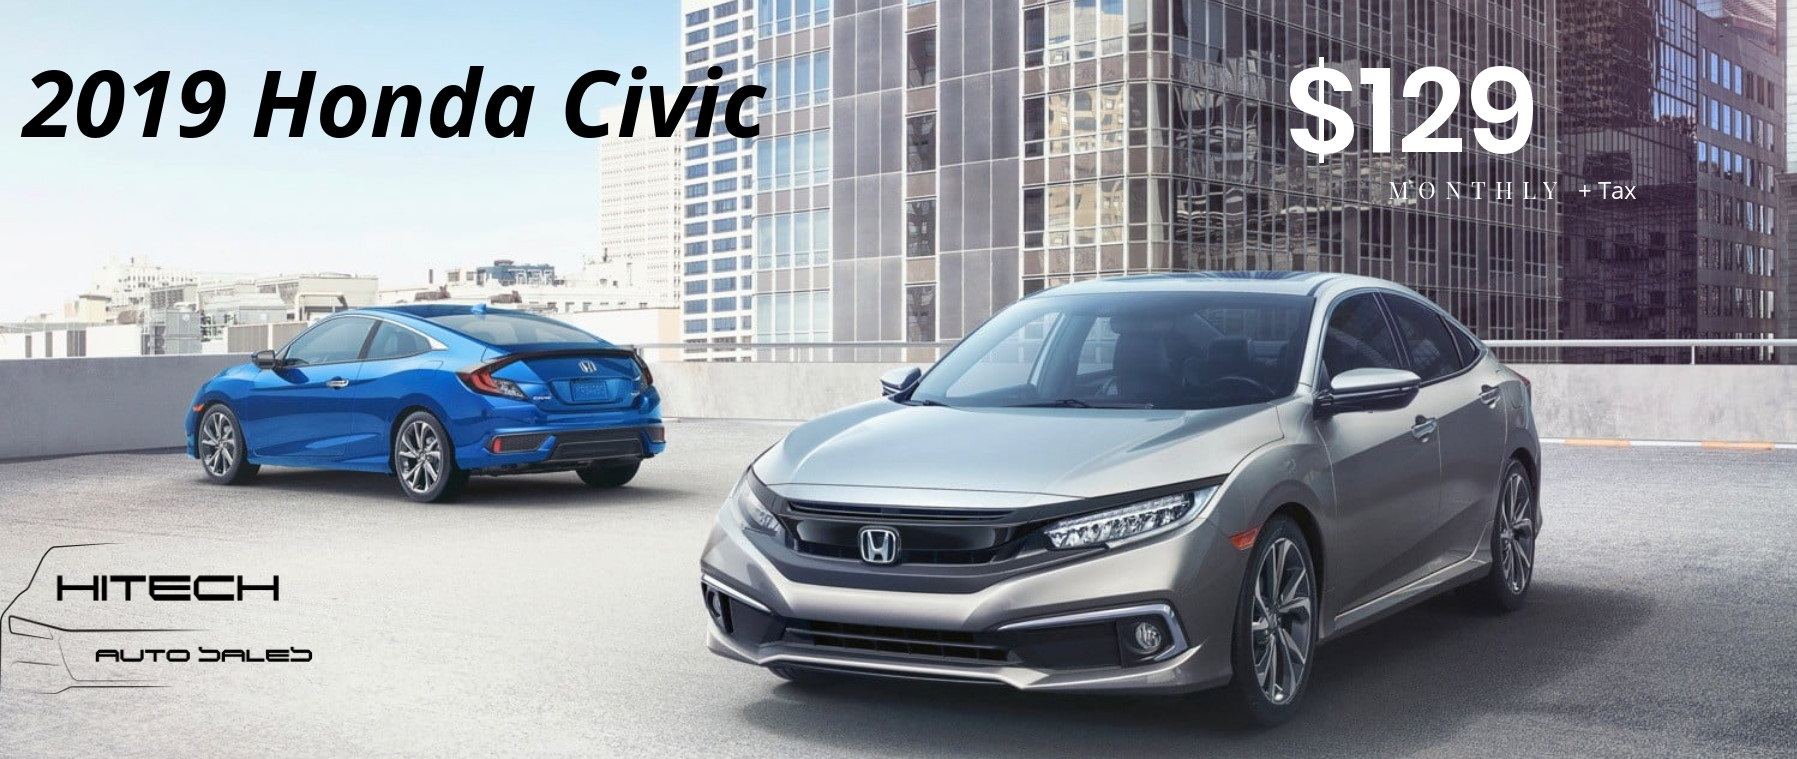 2019 Honda_Civic_website